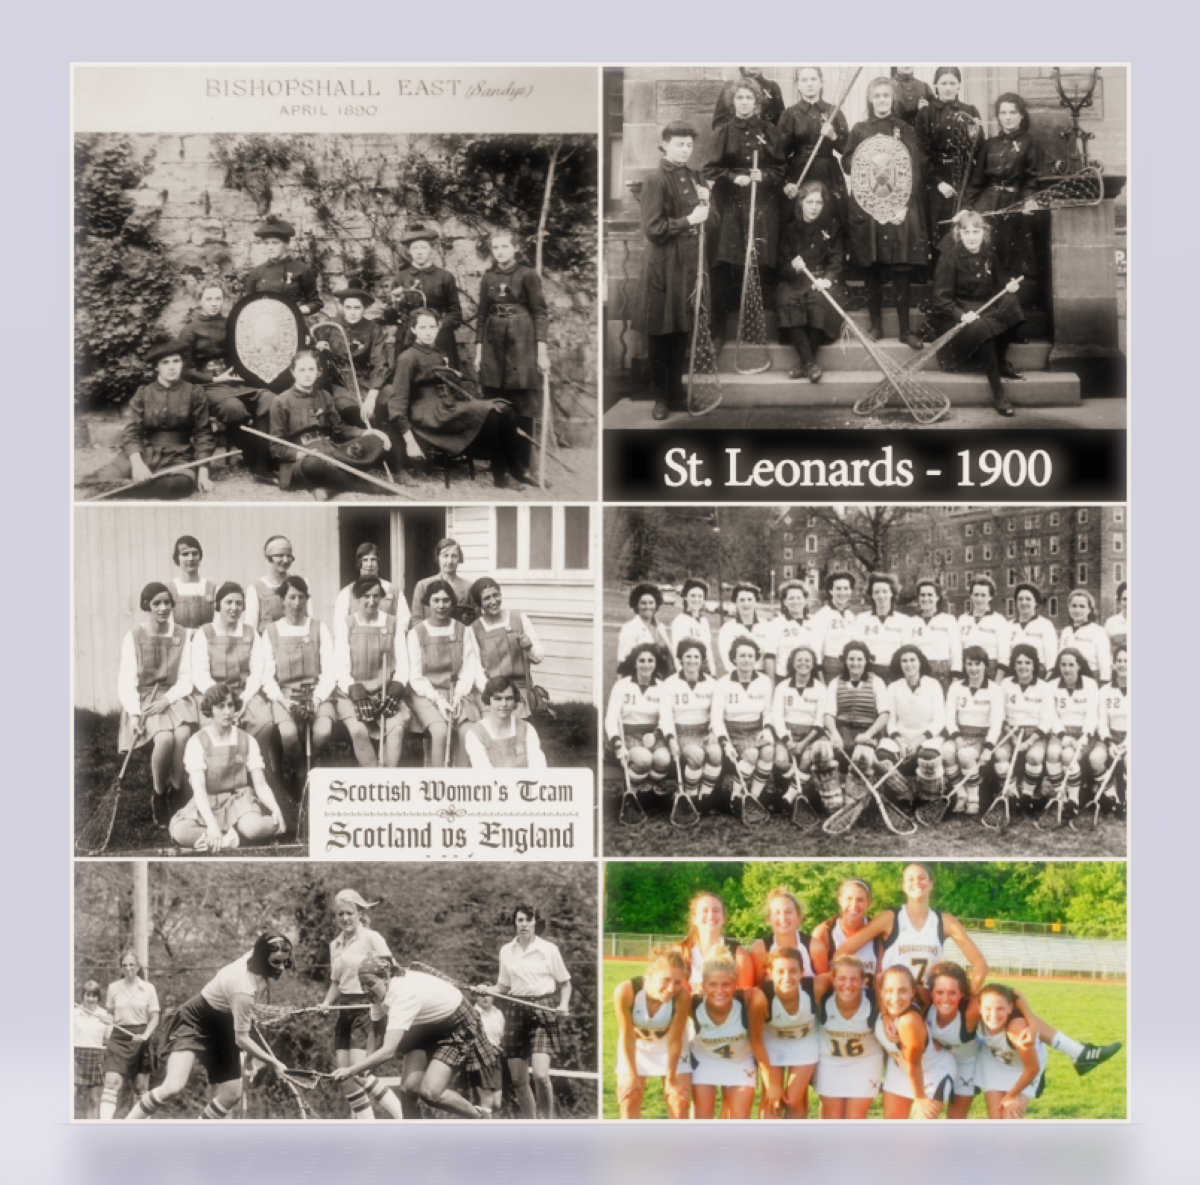 The History of women's Lacrosse Uniforms – You've Come a Long Way Baby